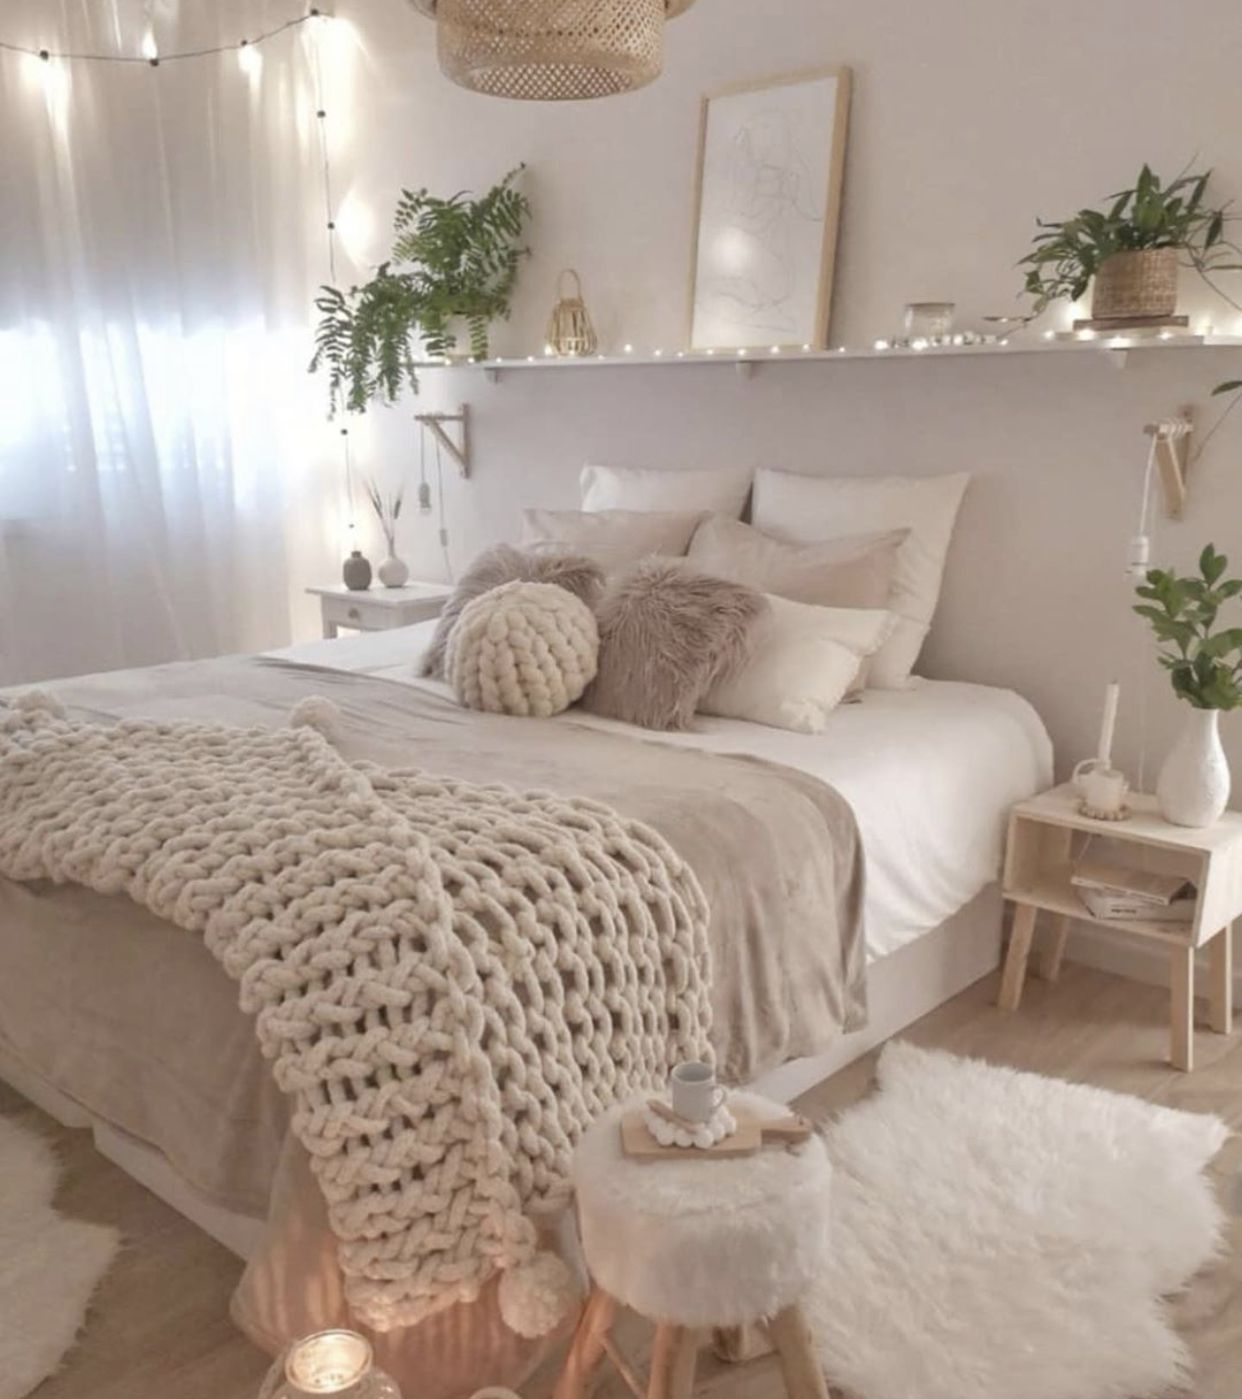 Bedroom Decor 2020 Bedroom Inspo! Inspiration for your